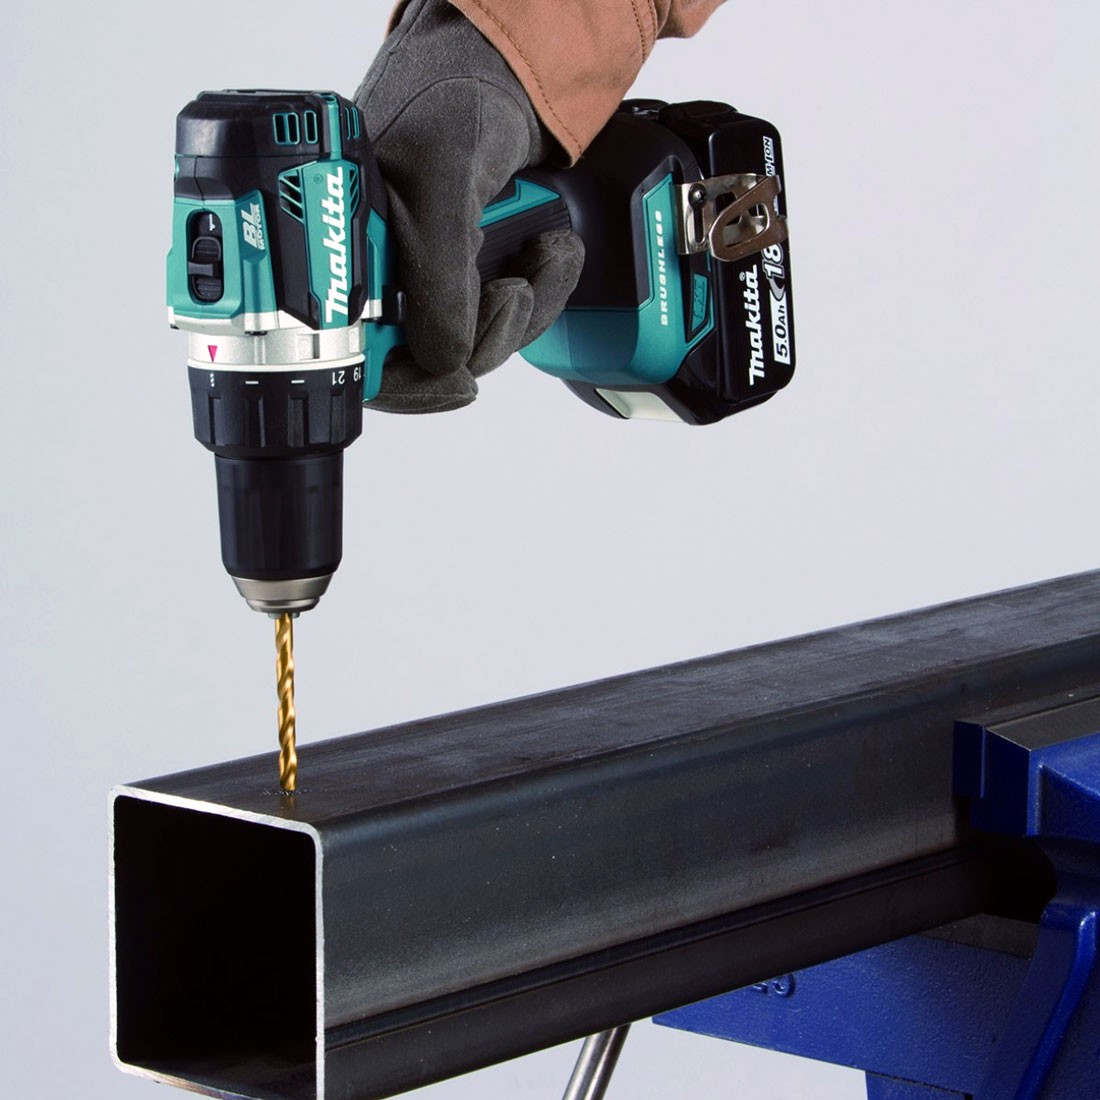 makita ddf484z 18v lxt cordless brushless 2 speed drill driver body only powertool world. Black Bedroom Furniture Sets. Home Design Ideas